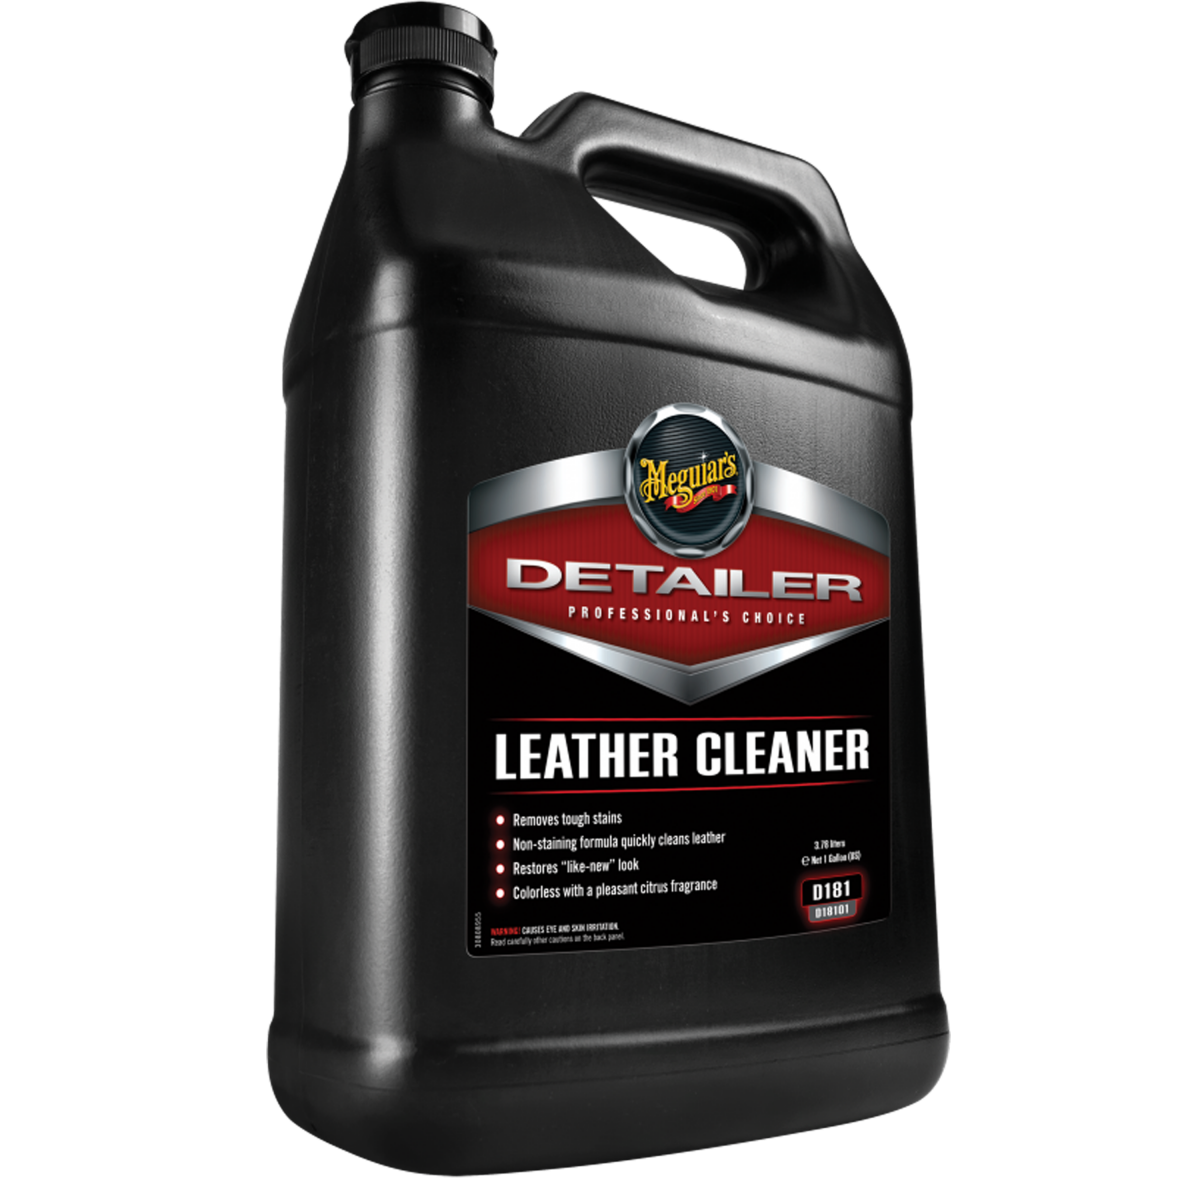 Meguiar's Leather Cleaner